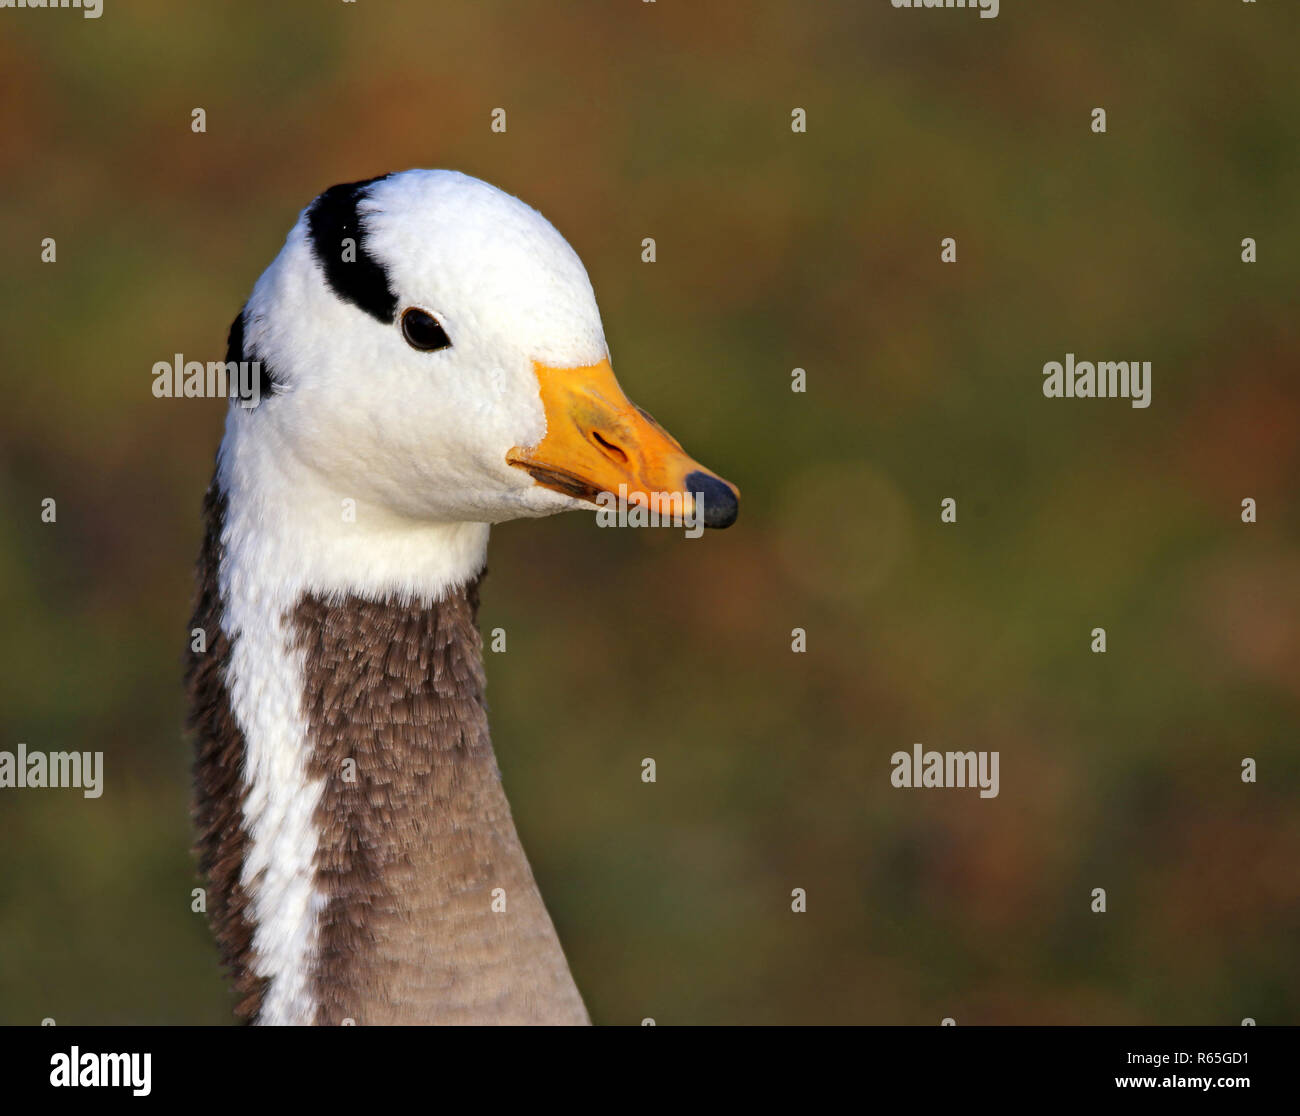 striped goose anser indicus - Stock Image